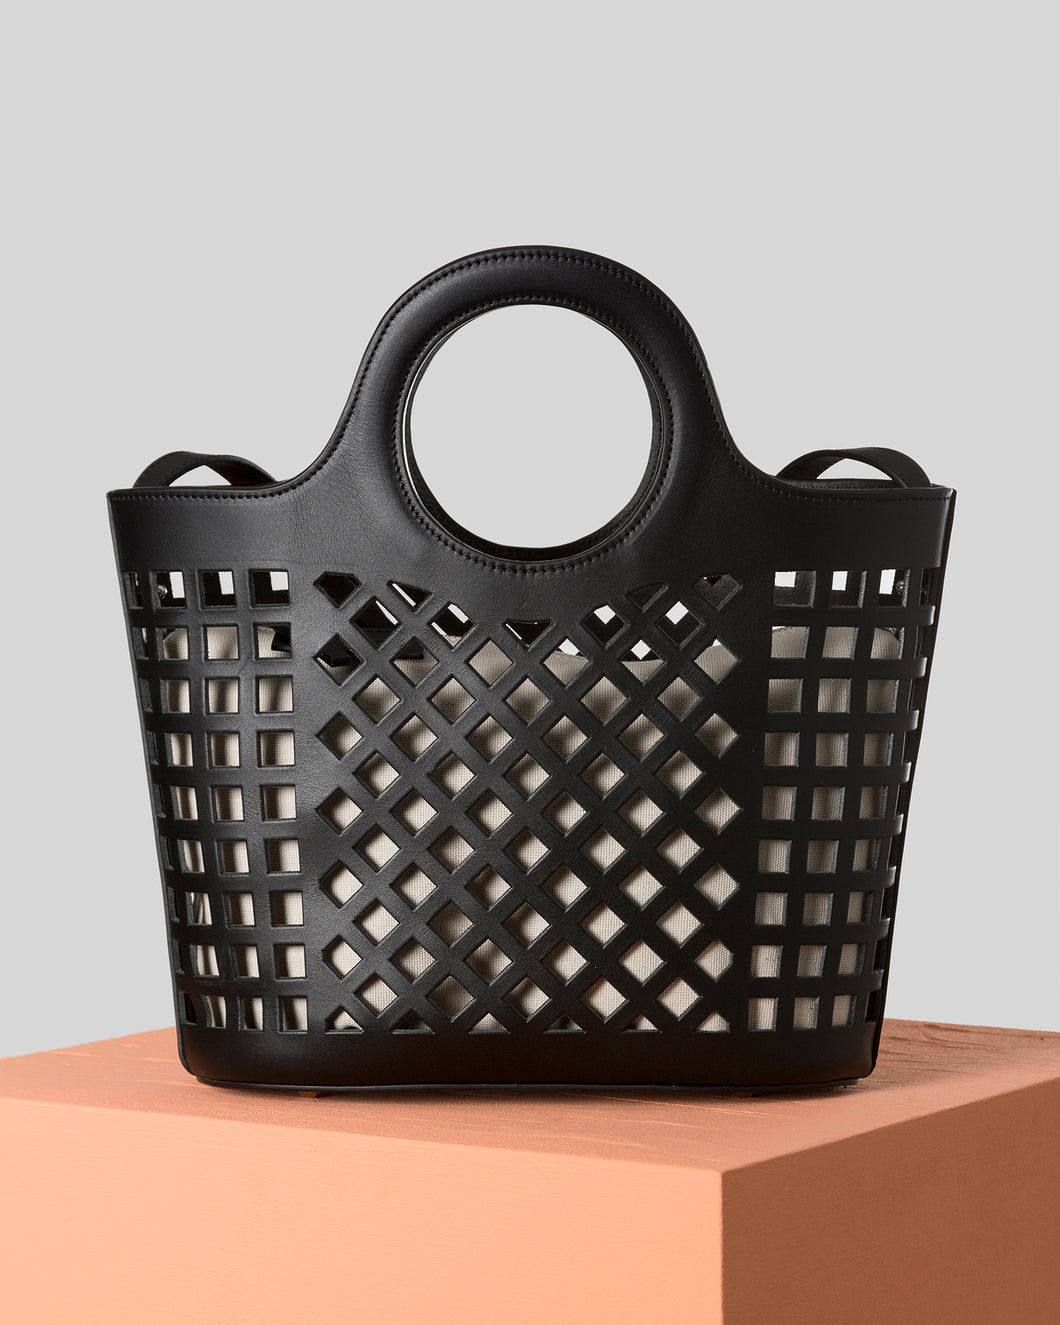 COLMADO MIDI - Cut-out Bag